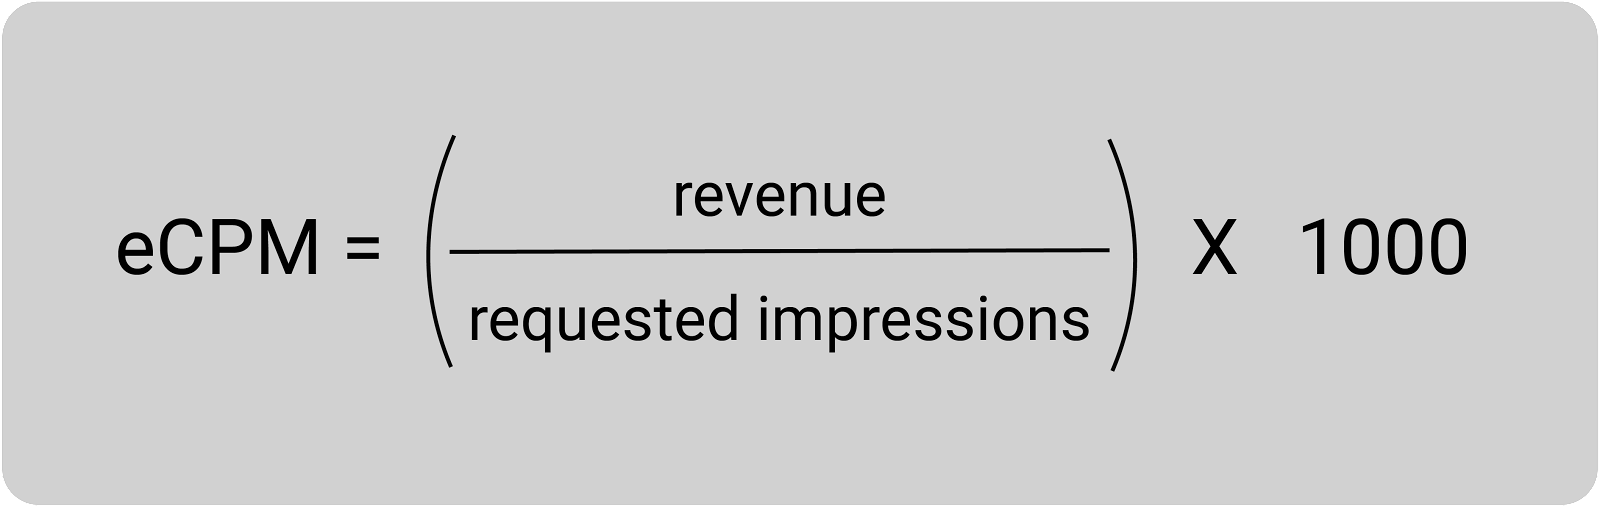 ecpm = revenue divided by requested impressions times 1000